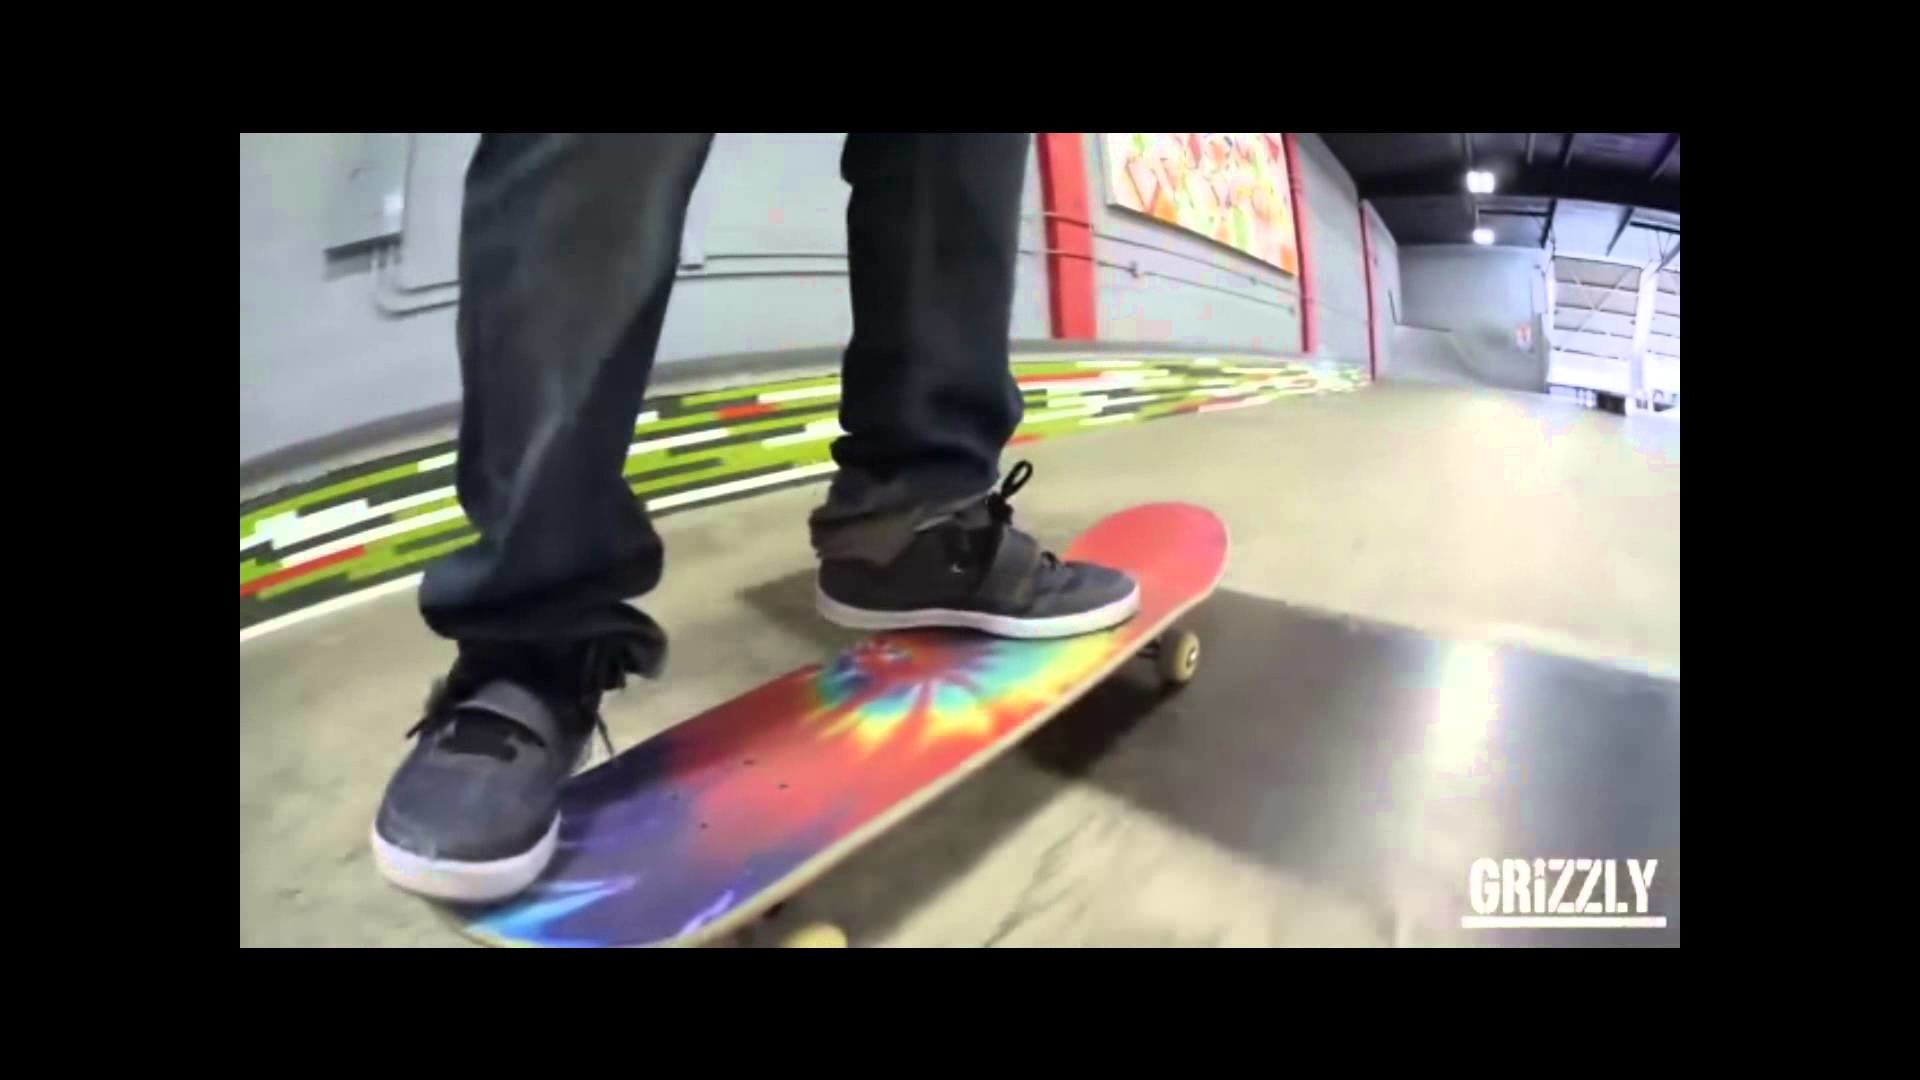 GRIZZLY: Torey Pudwill Grizzly Griptape Tie Dye Commercial